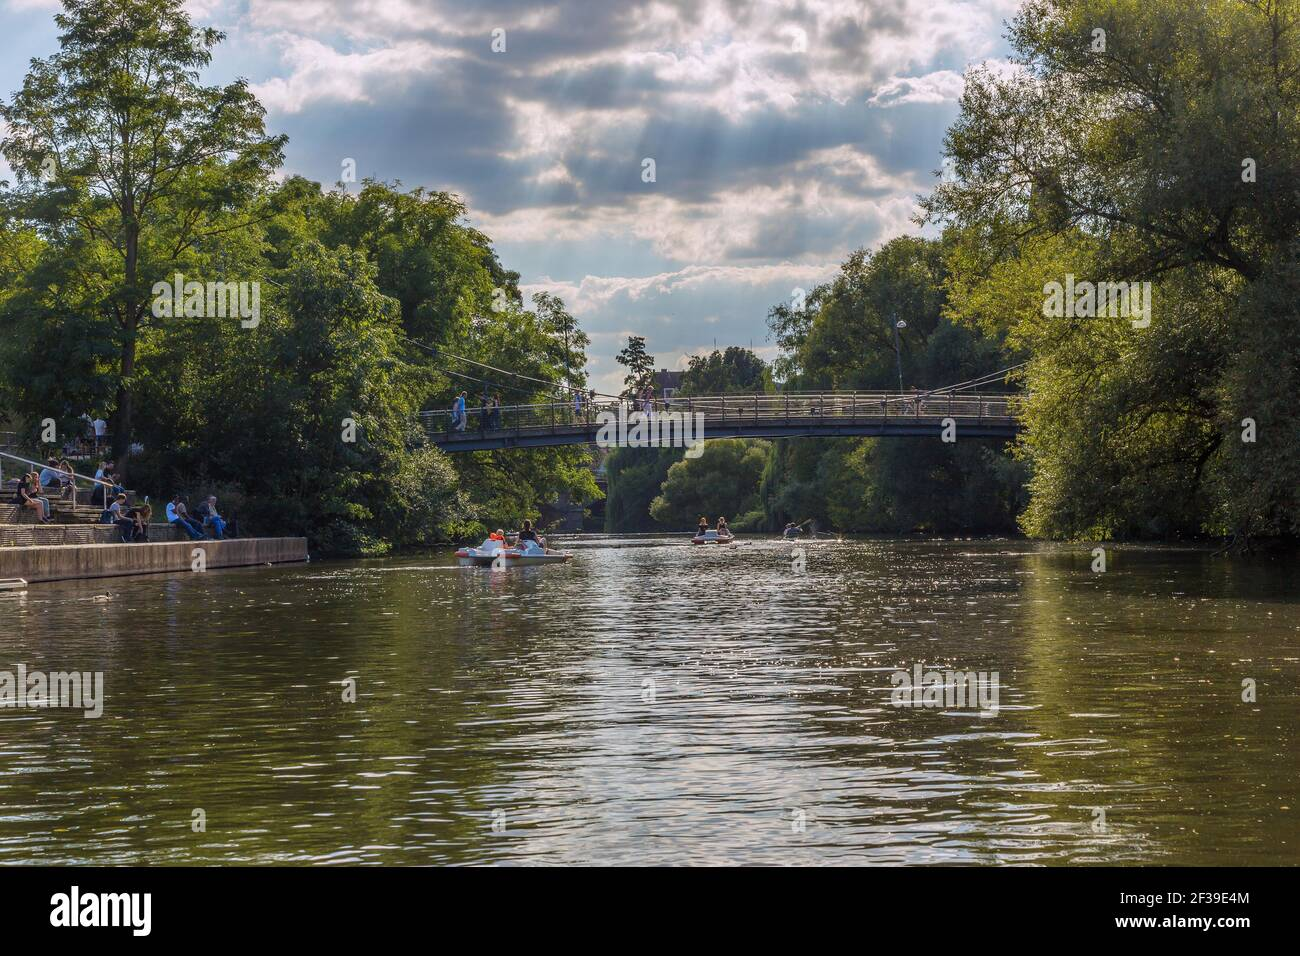 geography / travel, Germany, Hesse, Marburg, Marburg at the Lahn, pedal boat on the Lahn, Abendroth-Br, Additional-Rights-Clearance-Info-Not-Available Stock Photo